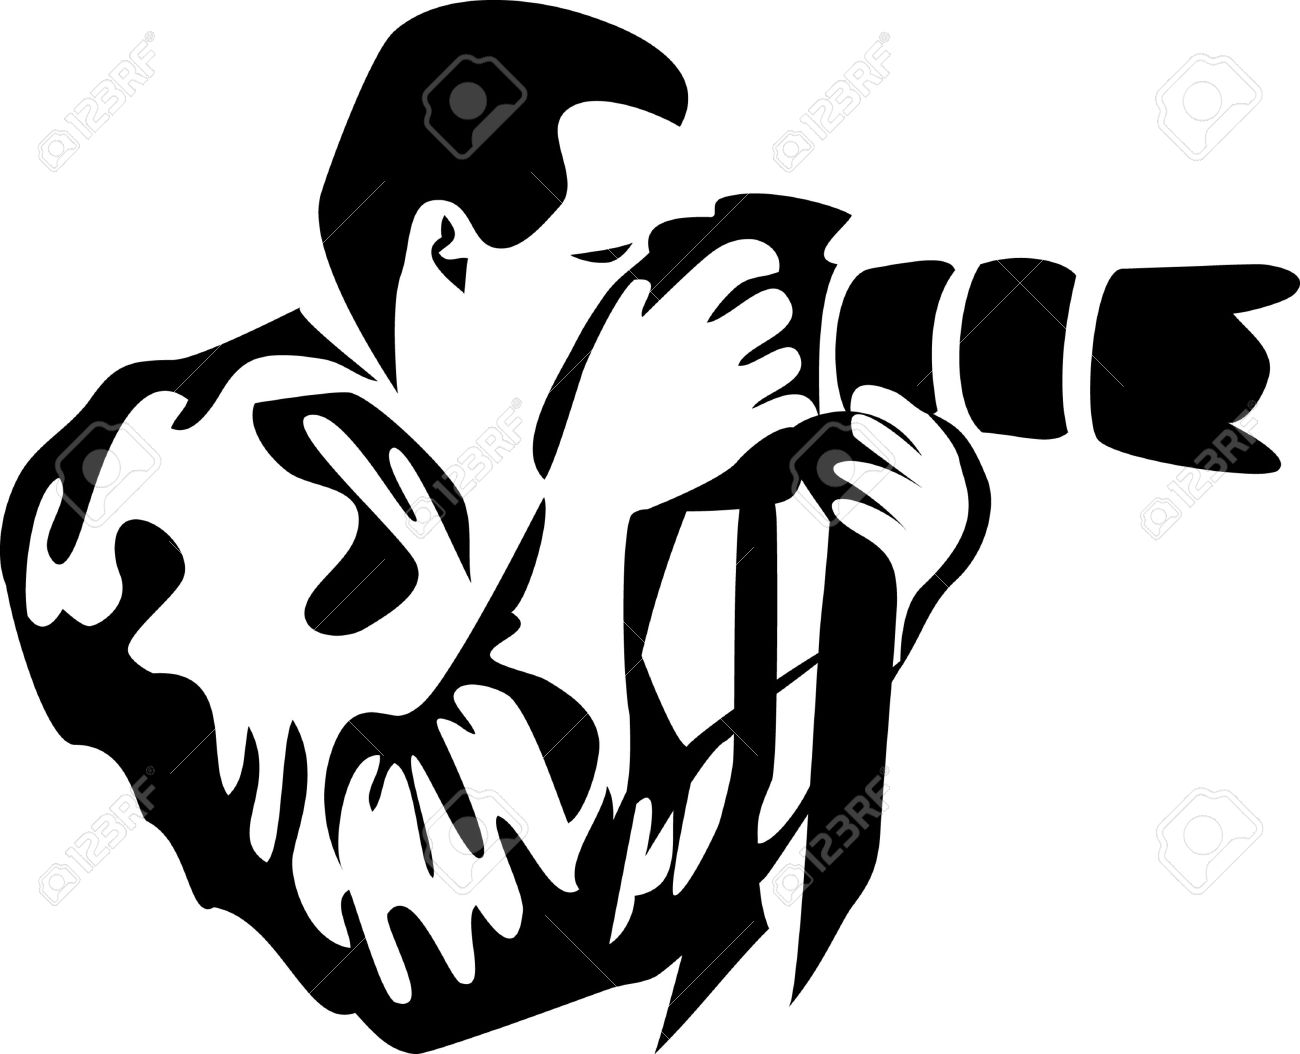 Professional photographer clipart.